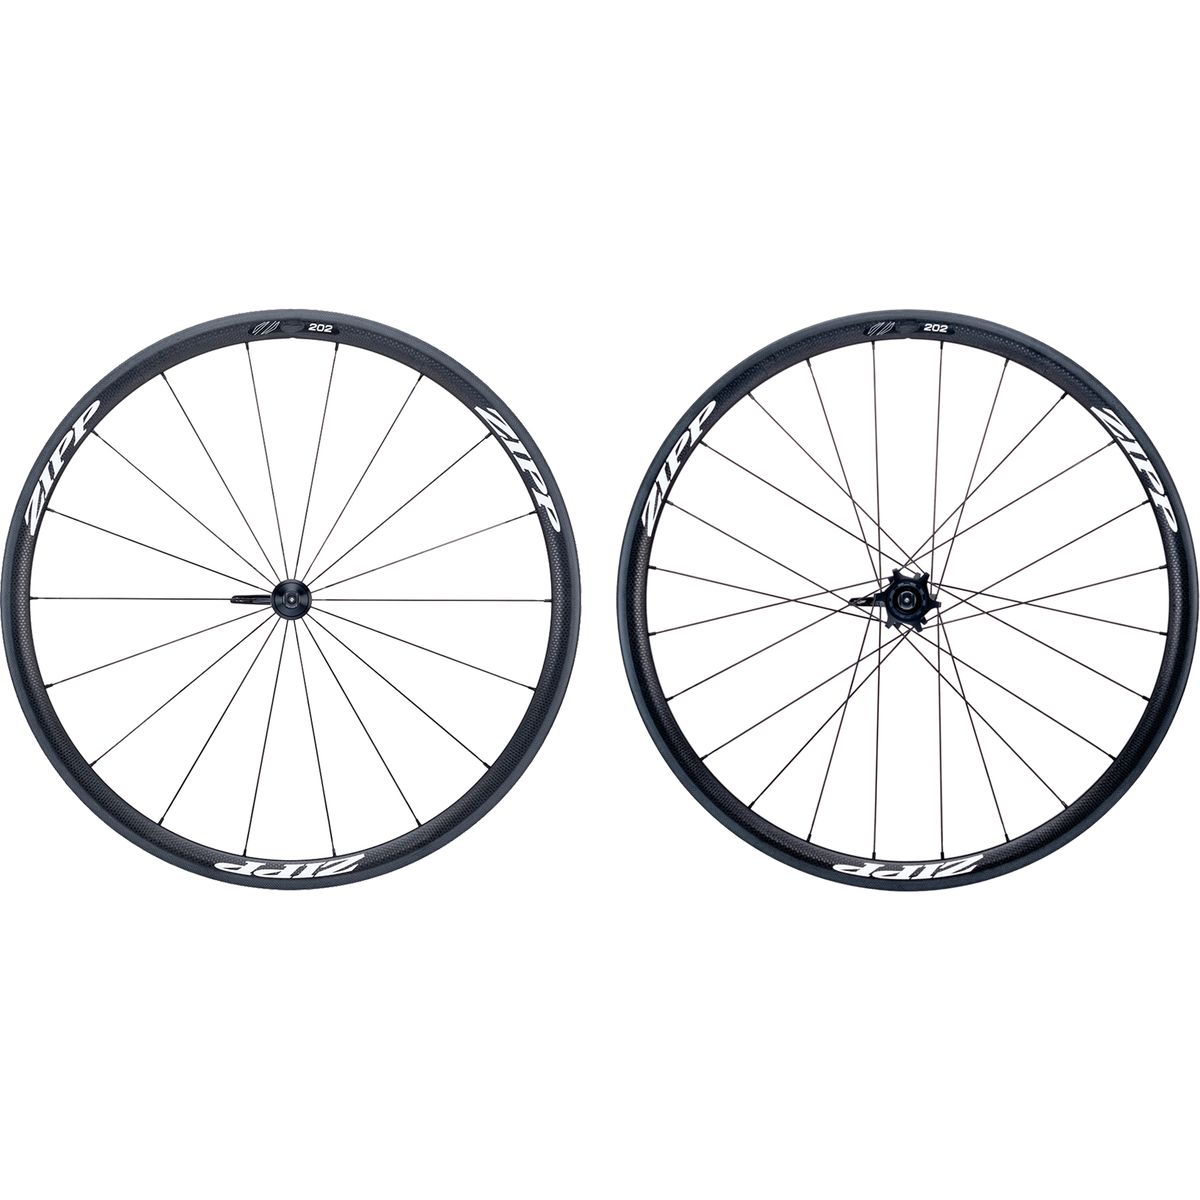 Zipp 202 Carbon Road Wheelset  Tubular